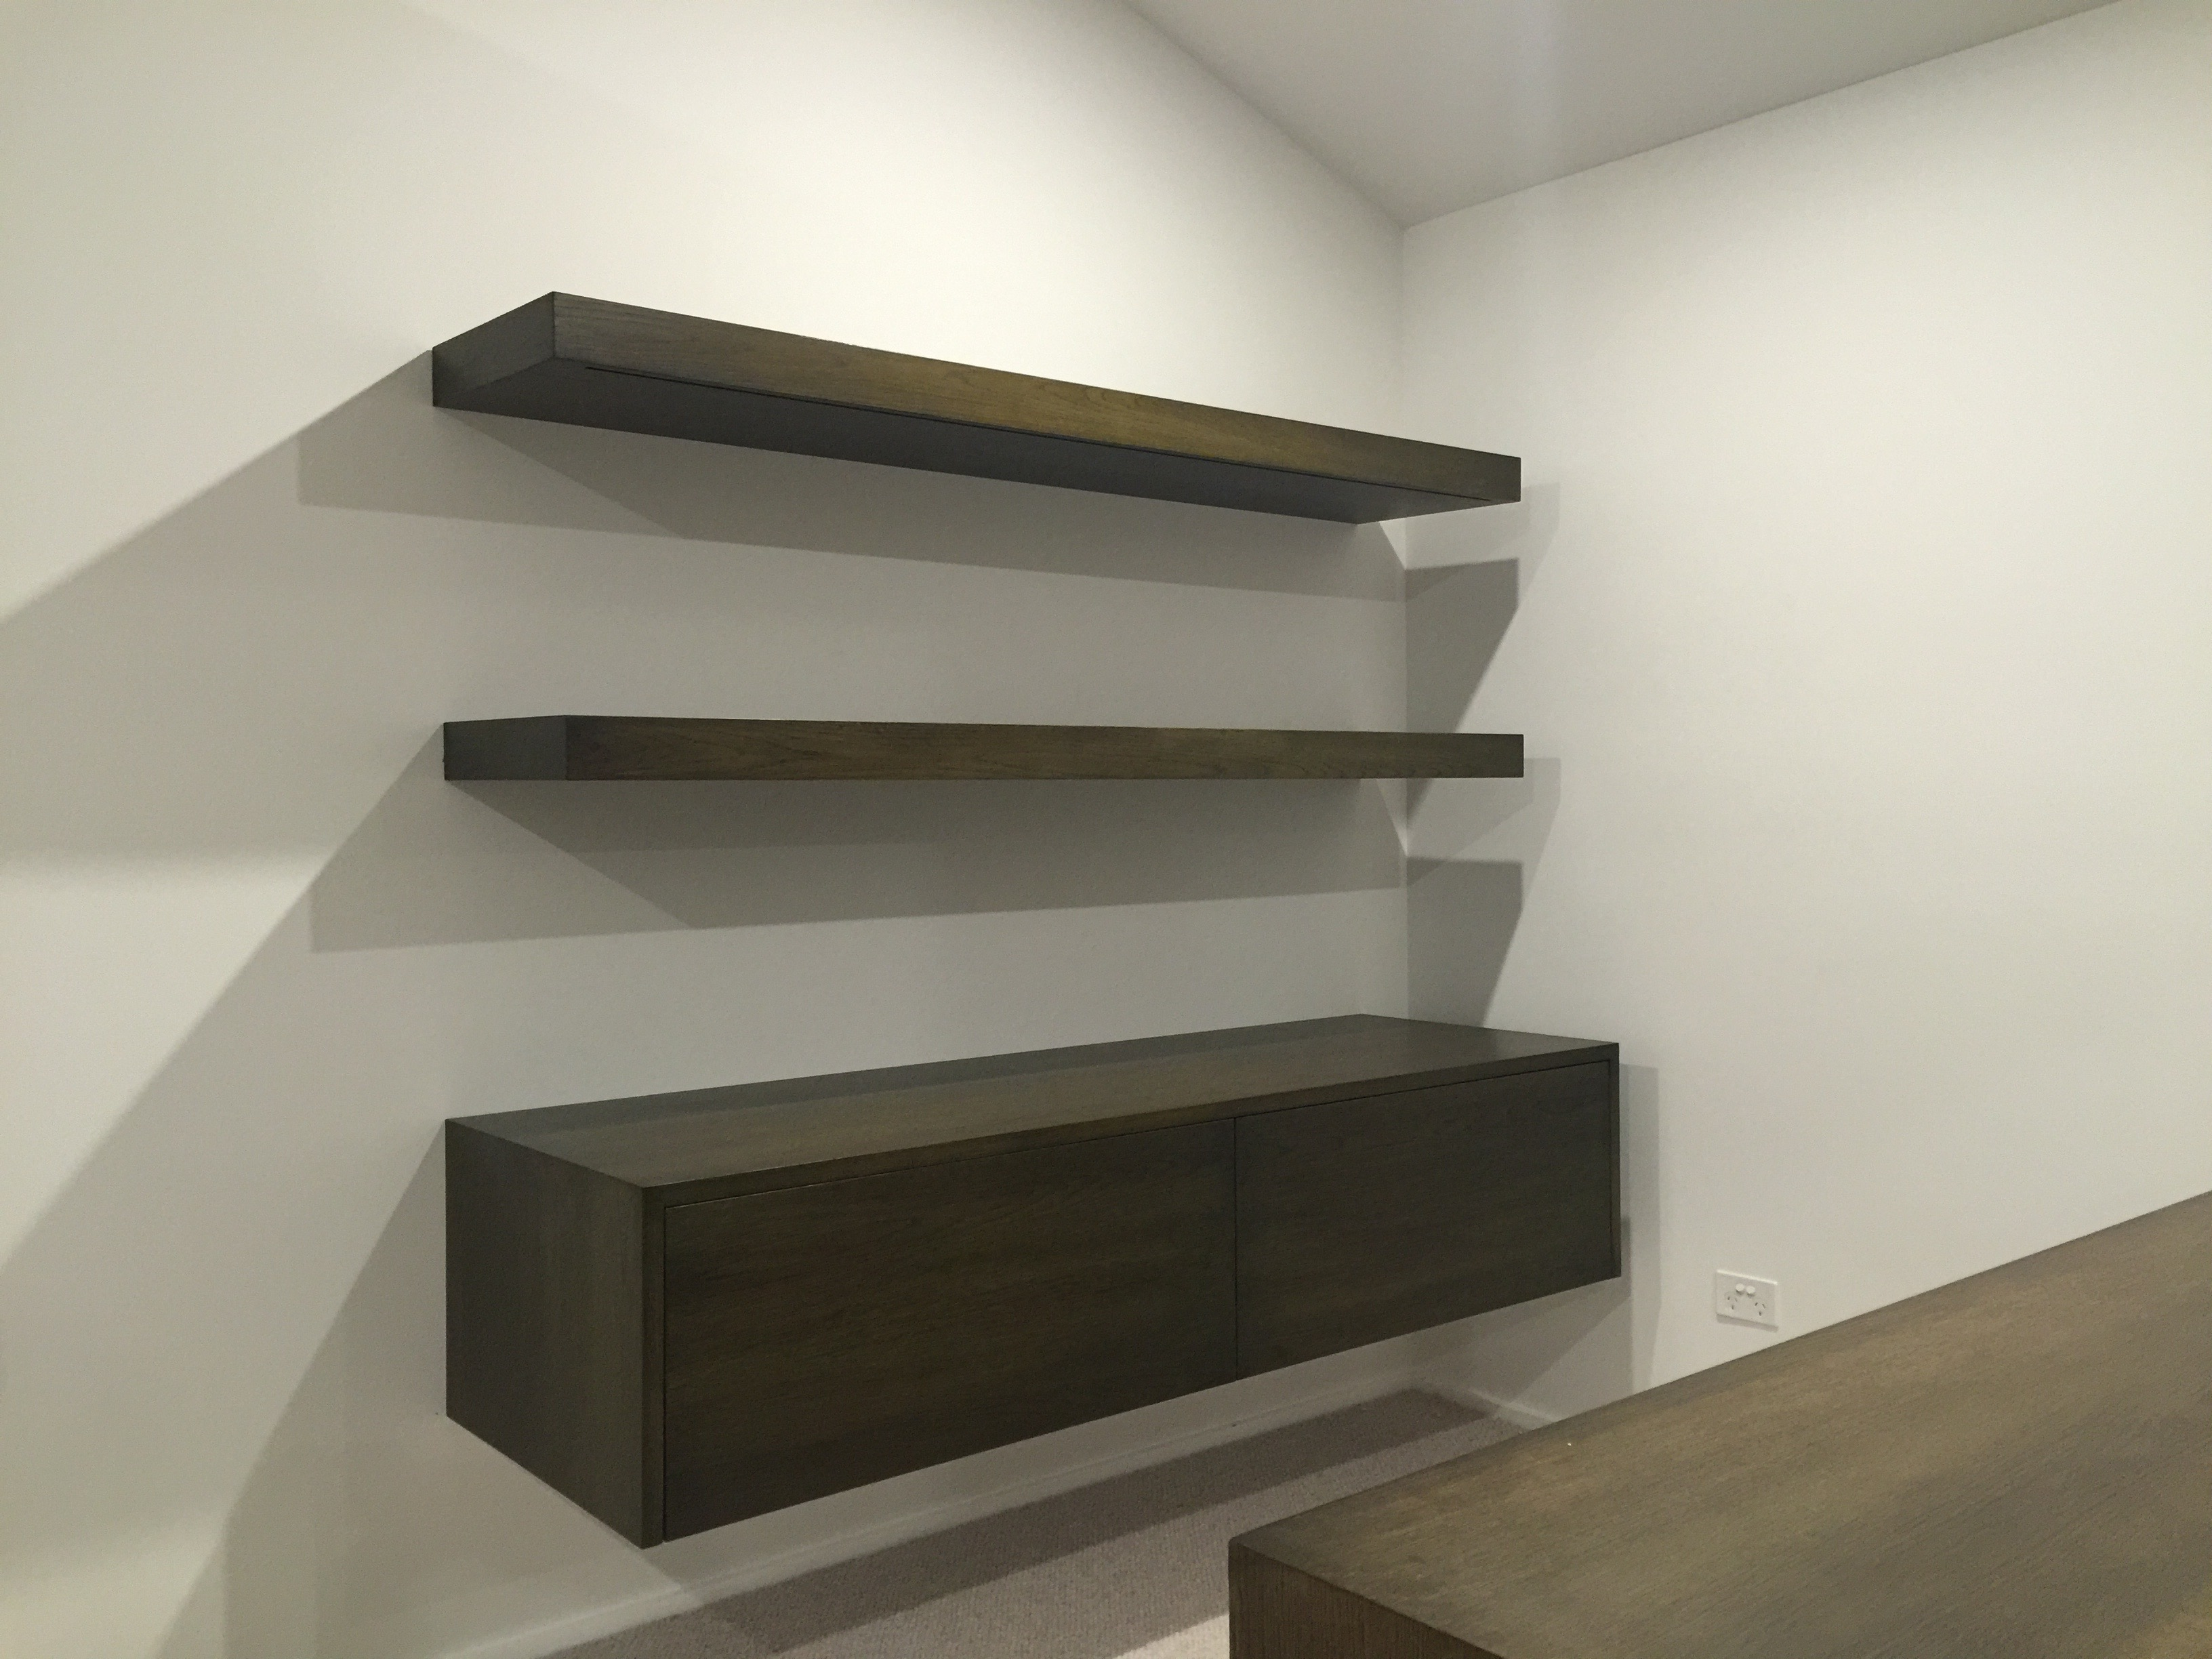 Custom Cabinetry and Shelving Designed and Built by Sound with Vision